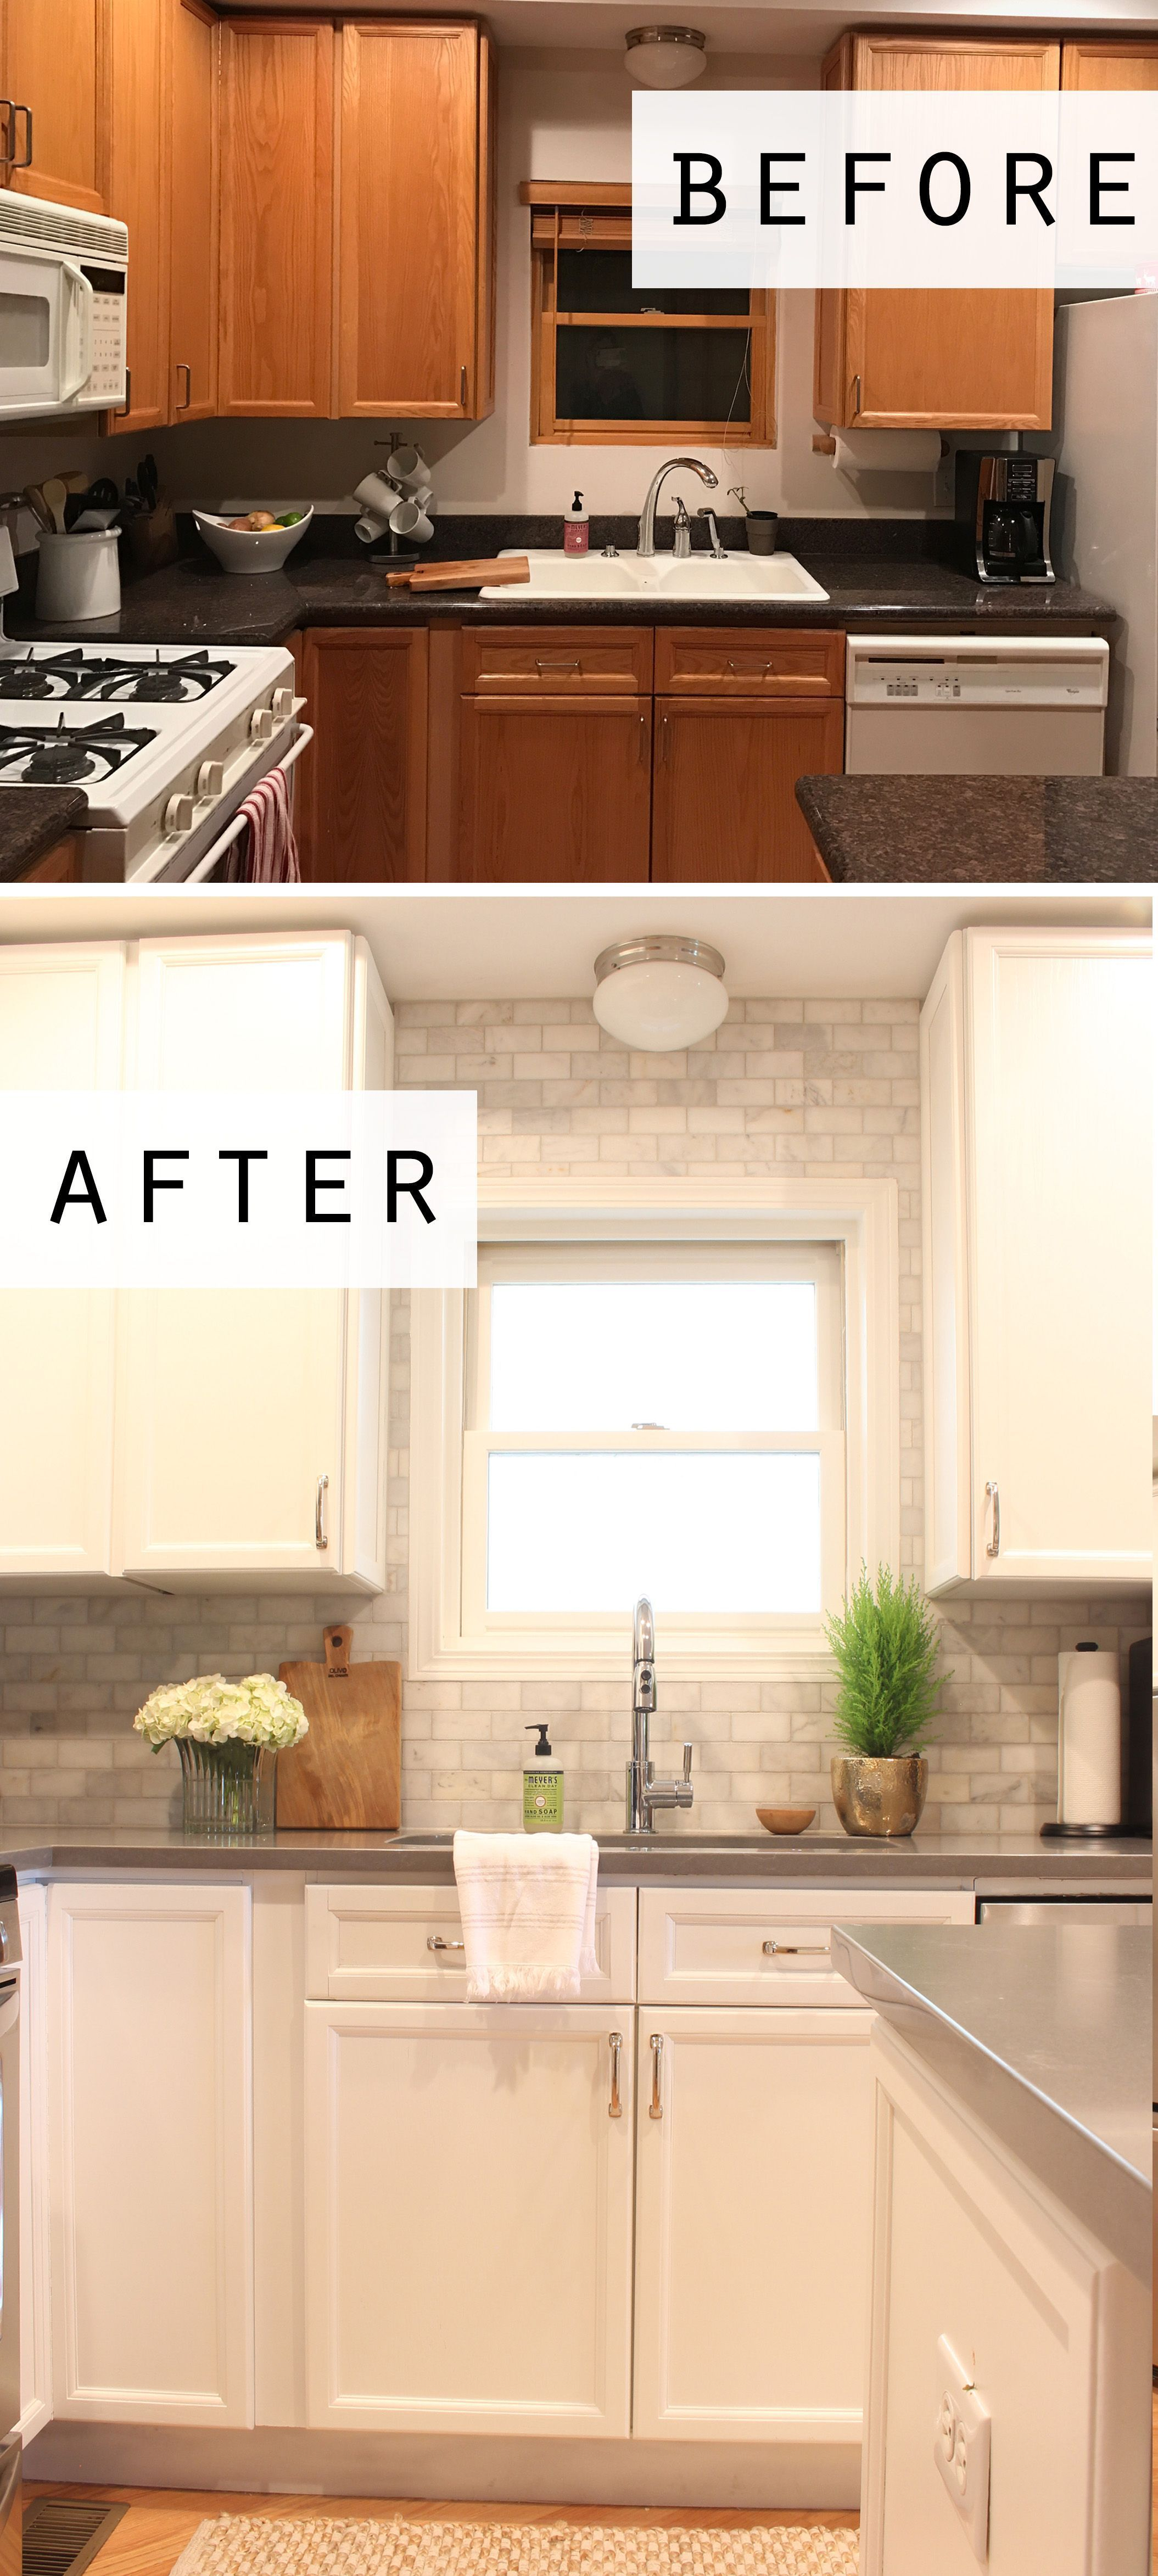 Cottage style before and after kitchen makeover featuring white cottage style before and after kitchen makeover featuring white cabinets quartz countertops and a marble subway tile backsplash up to the ceiling diy dailygadgetfo Image collections